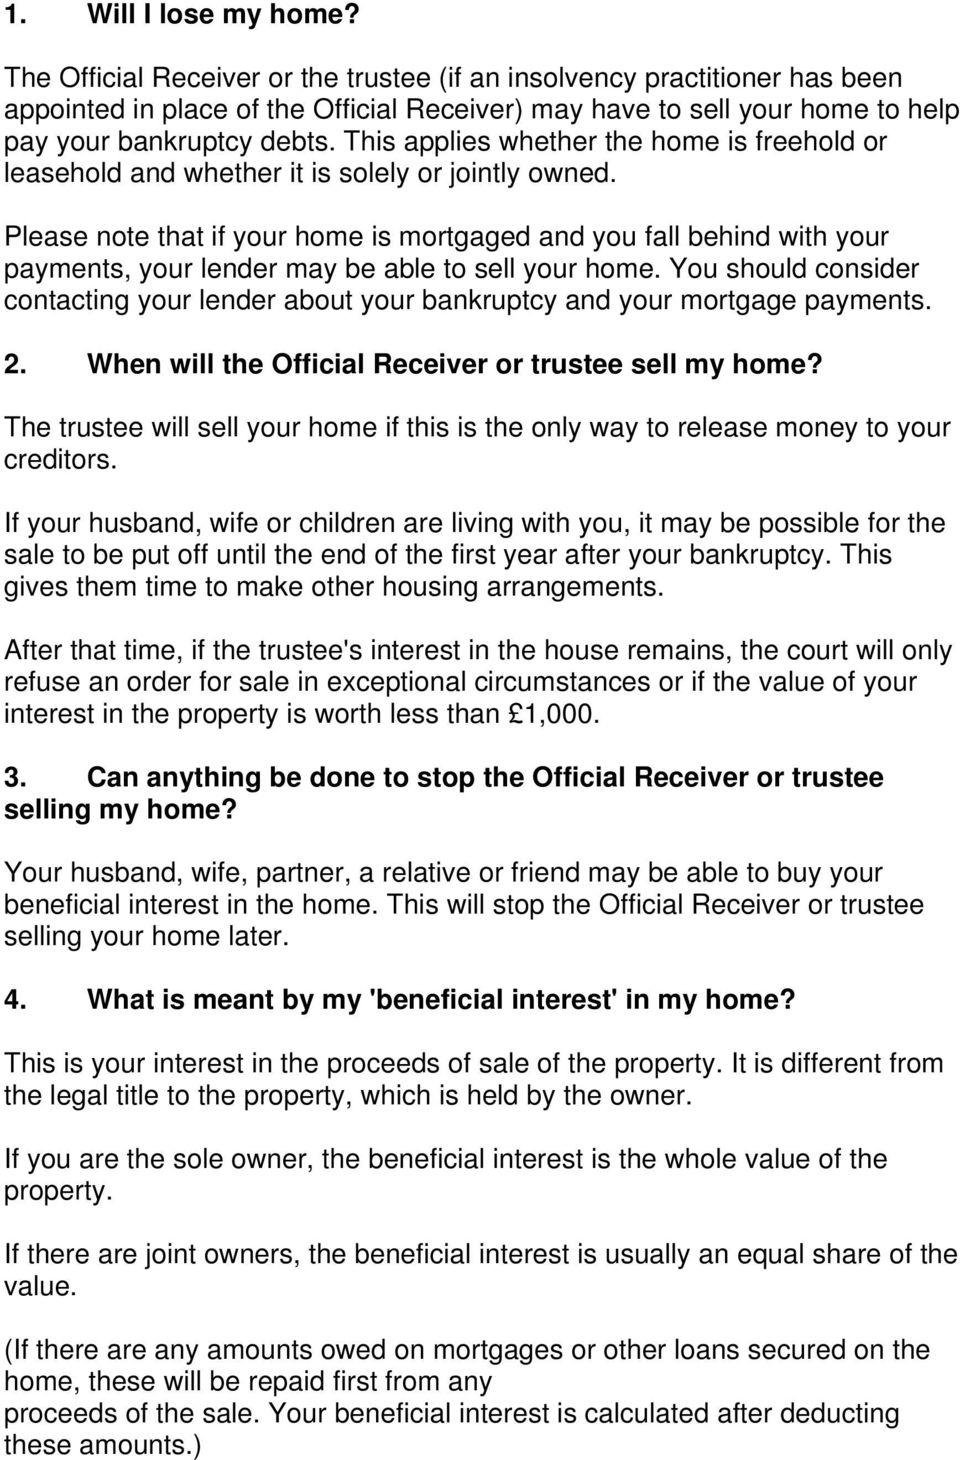 This applies whether the home is freehold or leasehold and whether it is solely or jointly owned.